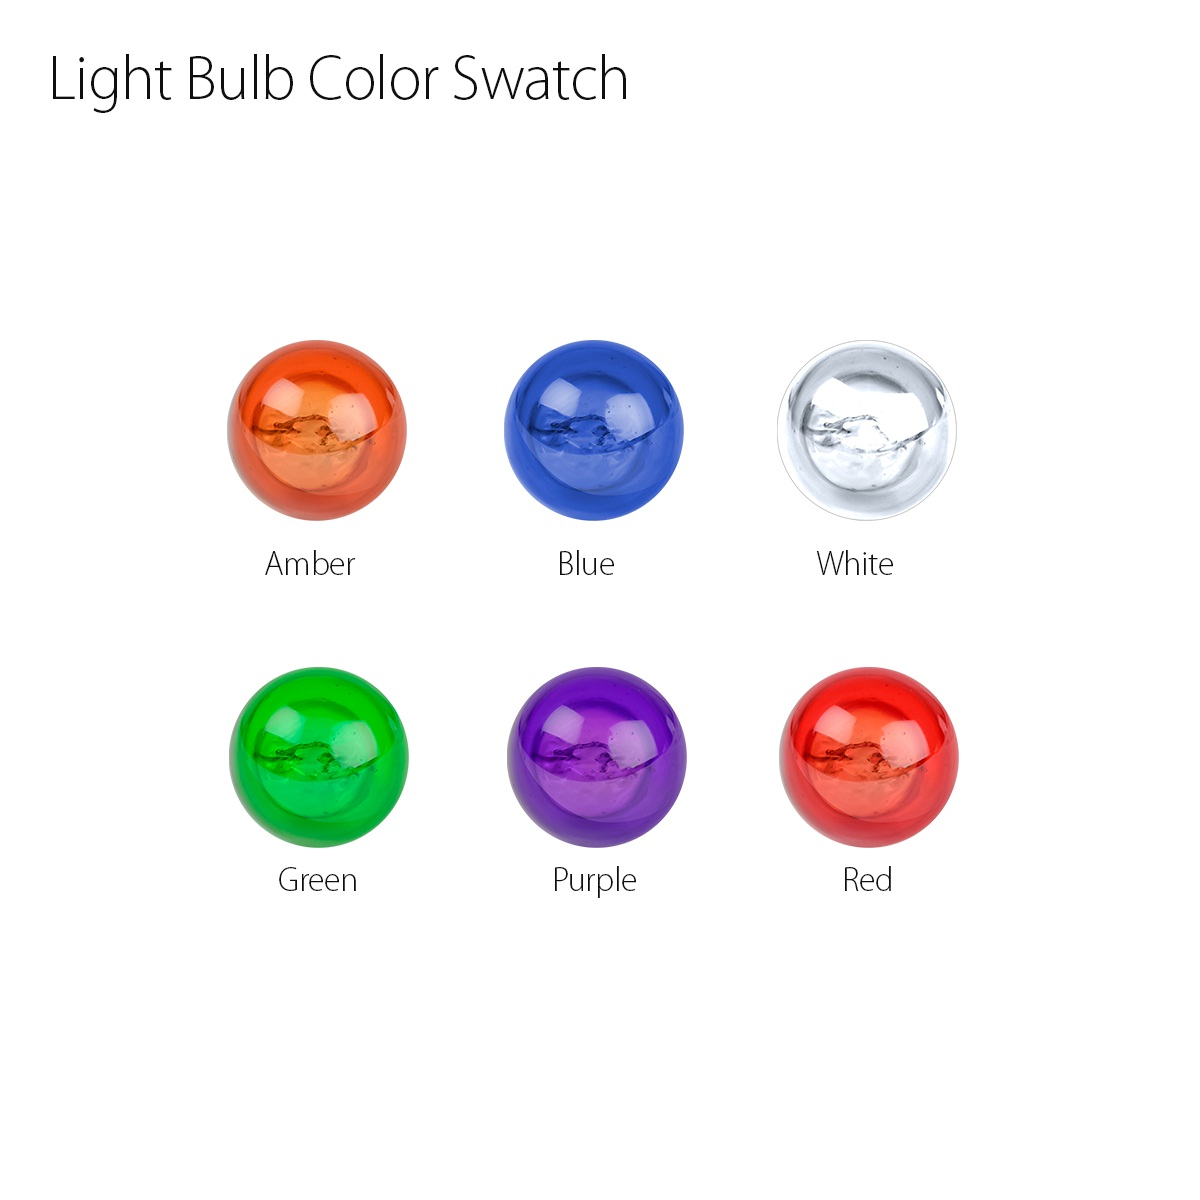 #53 Miniature Replacement Light Bulb Color Swatch